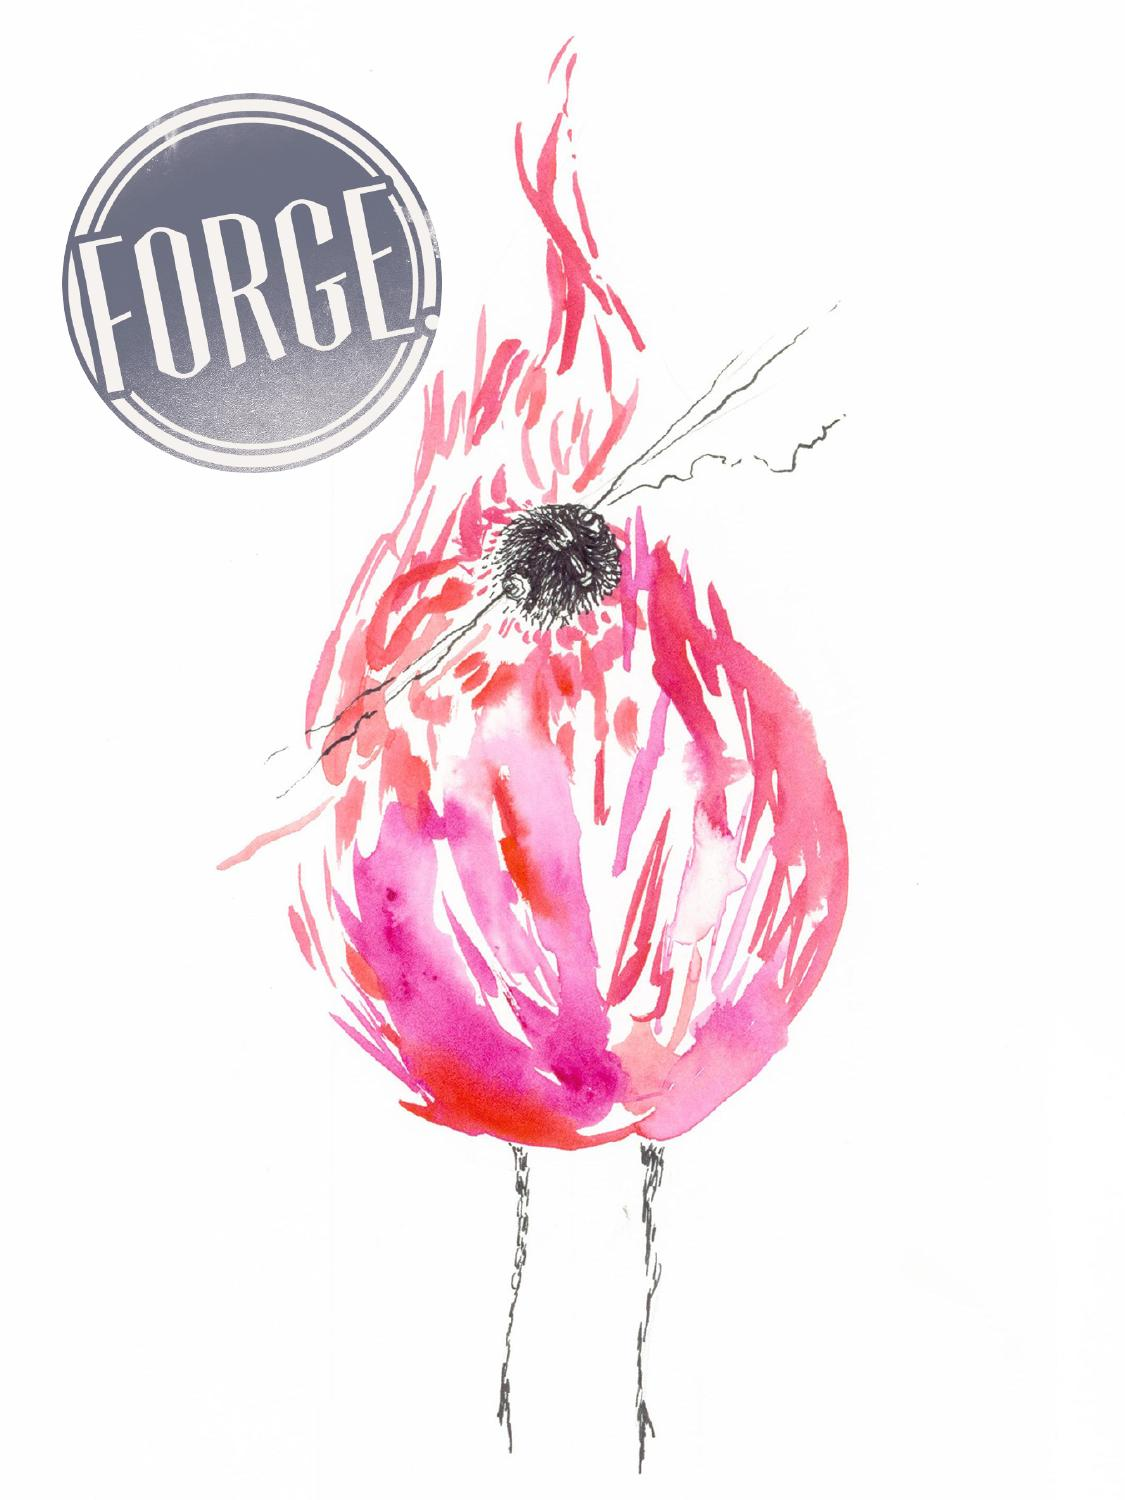 FORGE. Issue 10: Growth by FORGE. Art Magazine - issuu